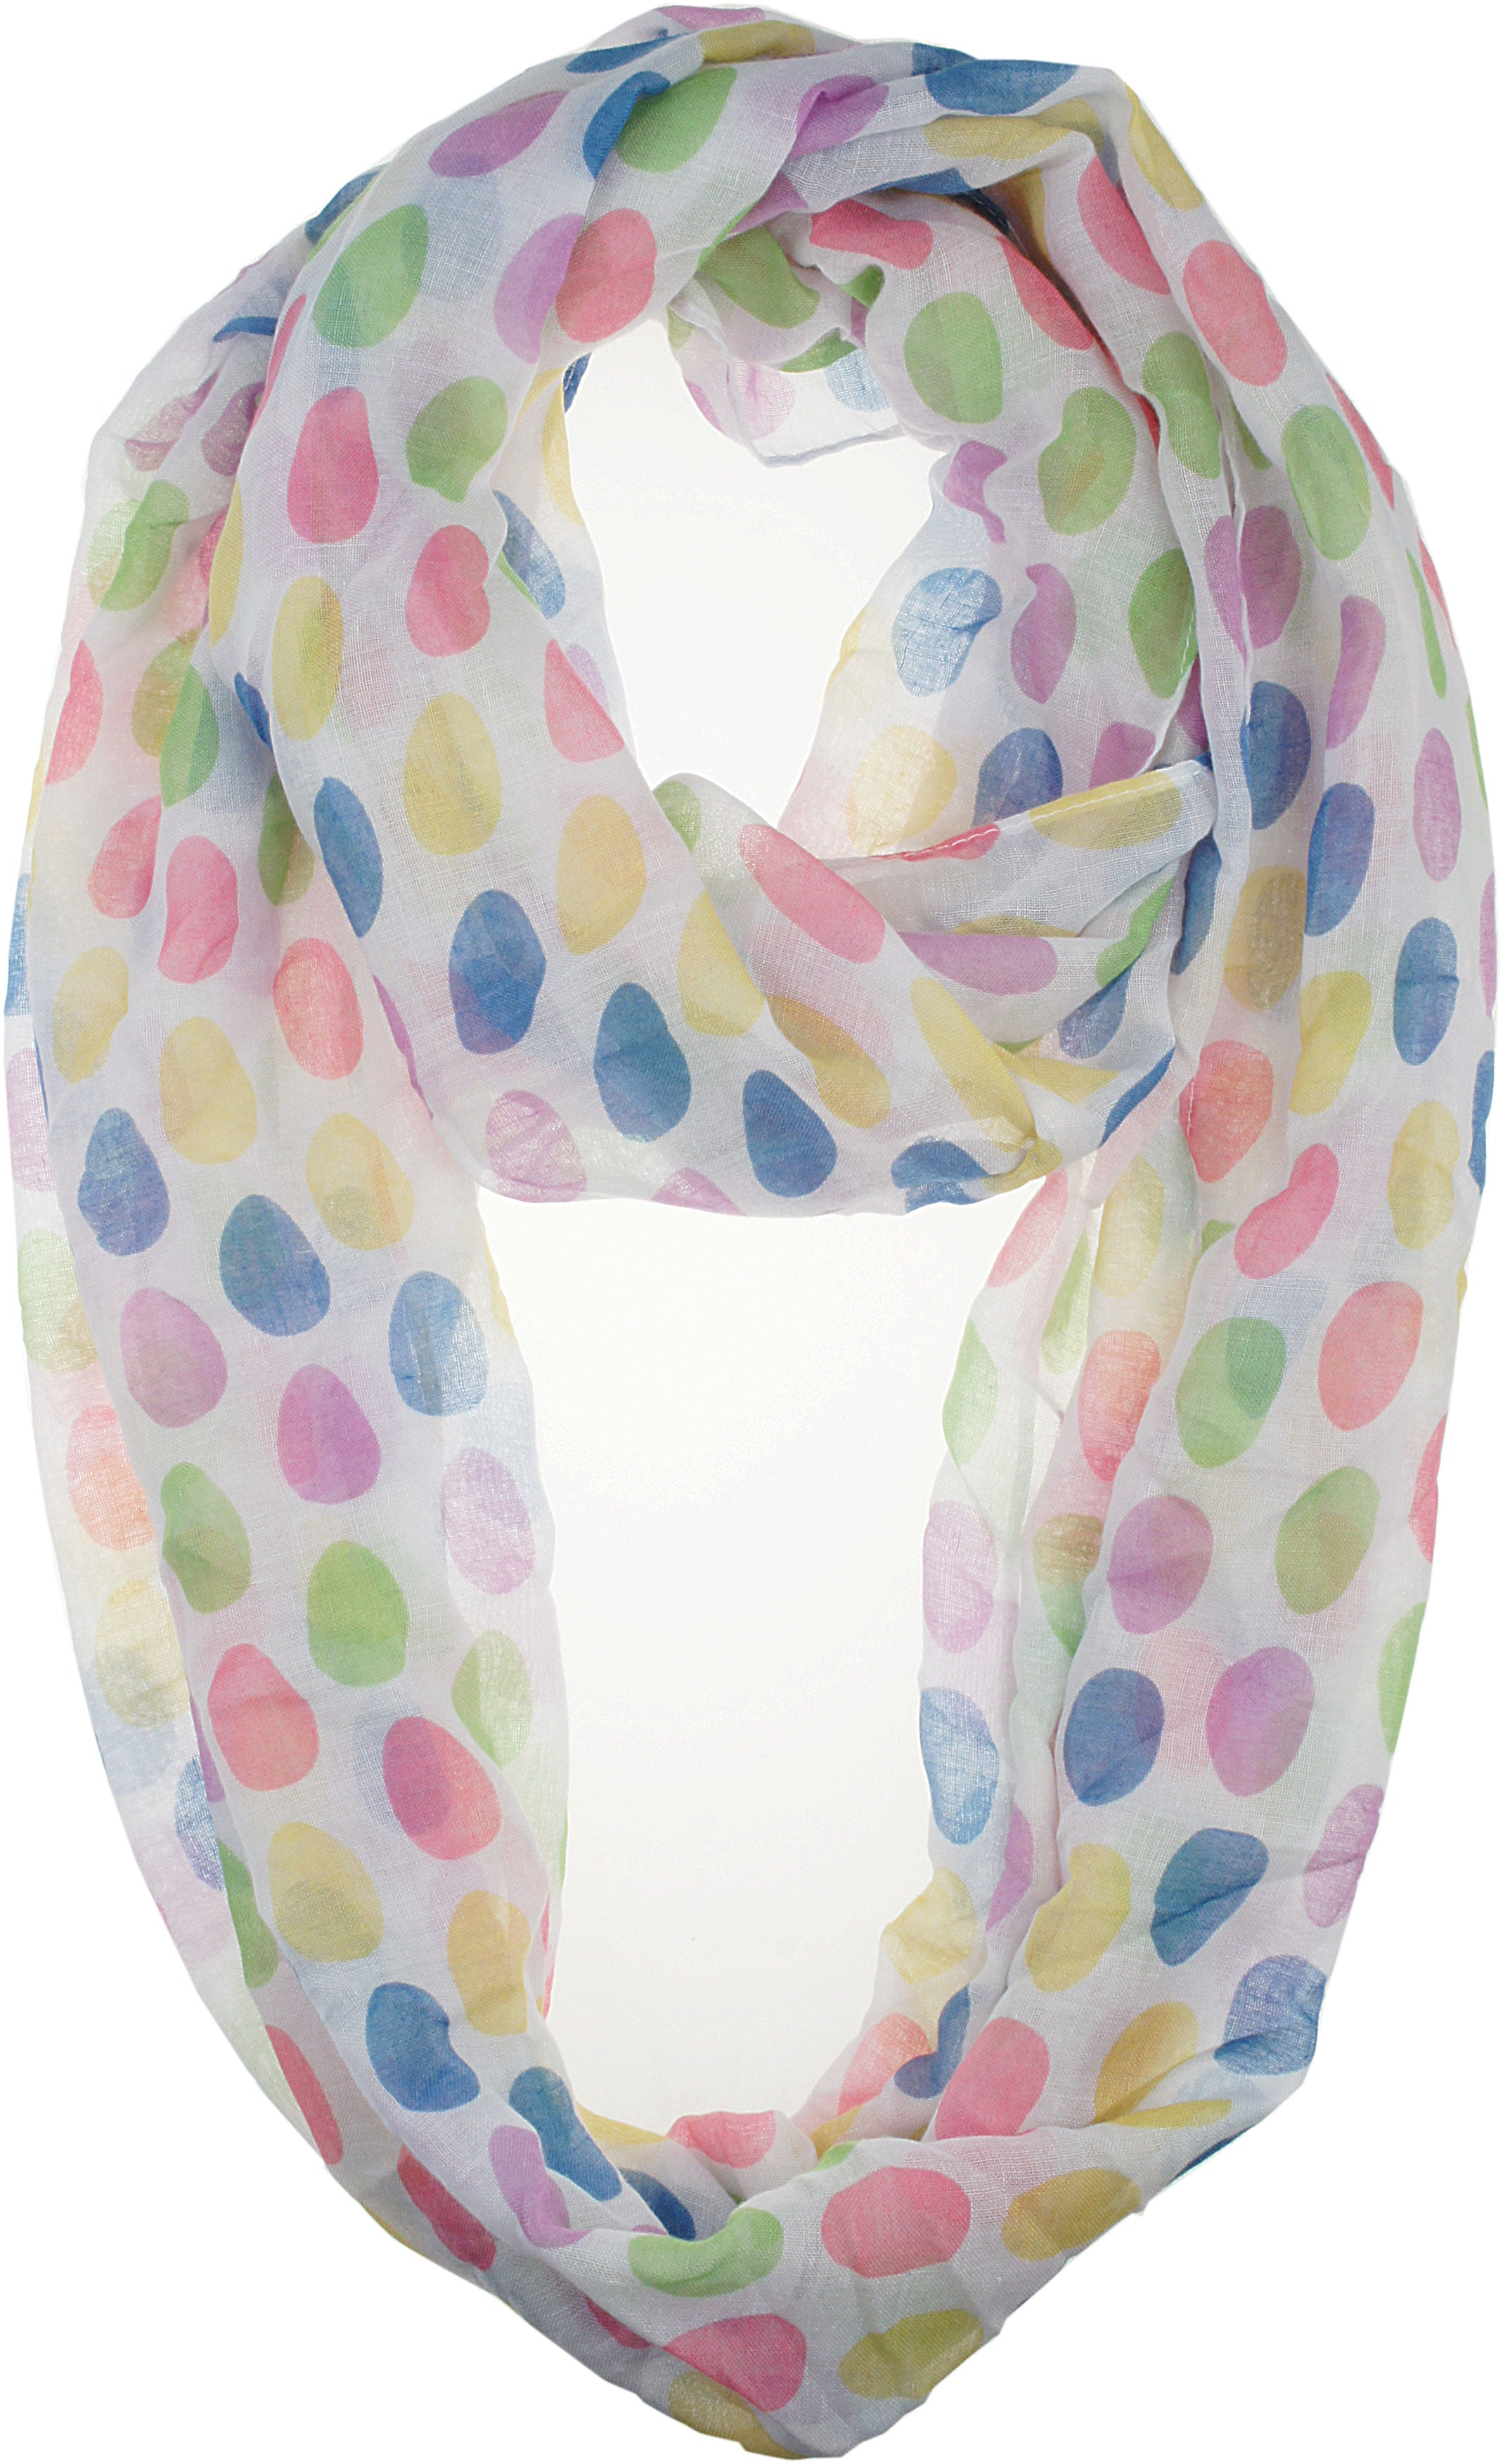 Soft Light Weight Easter Festival Sheer Infinity Scarf